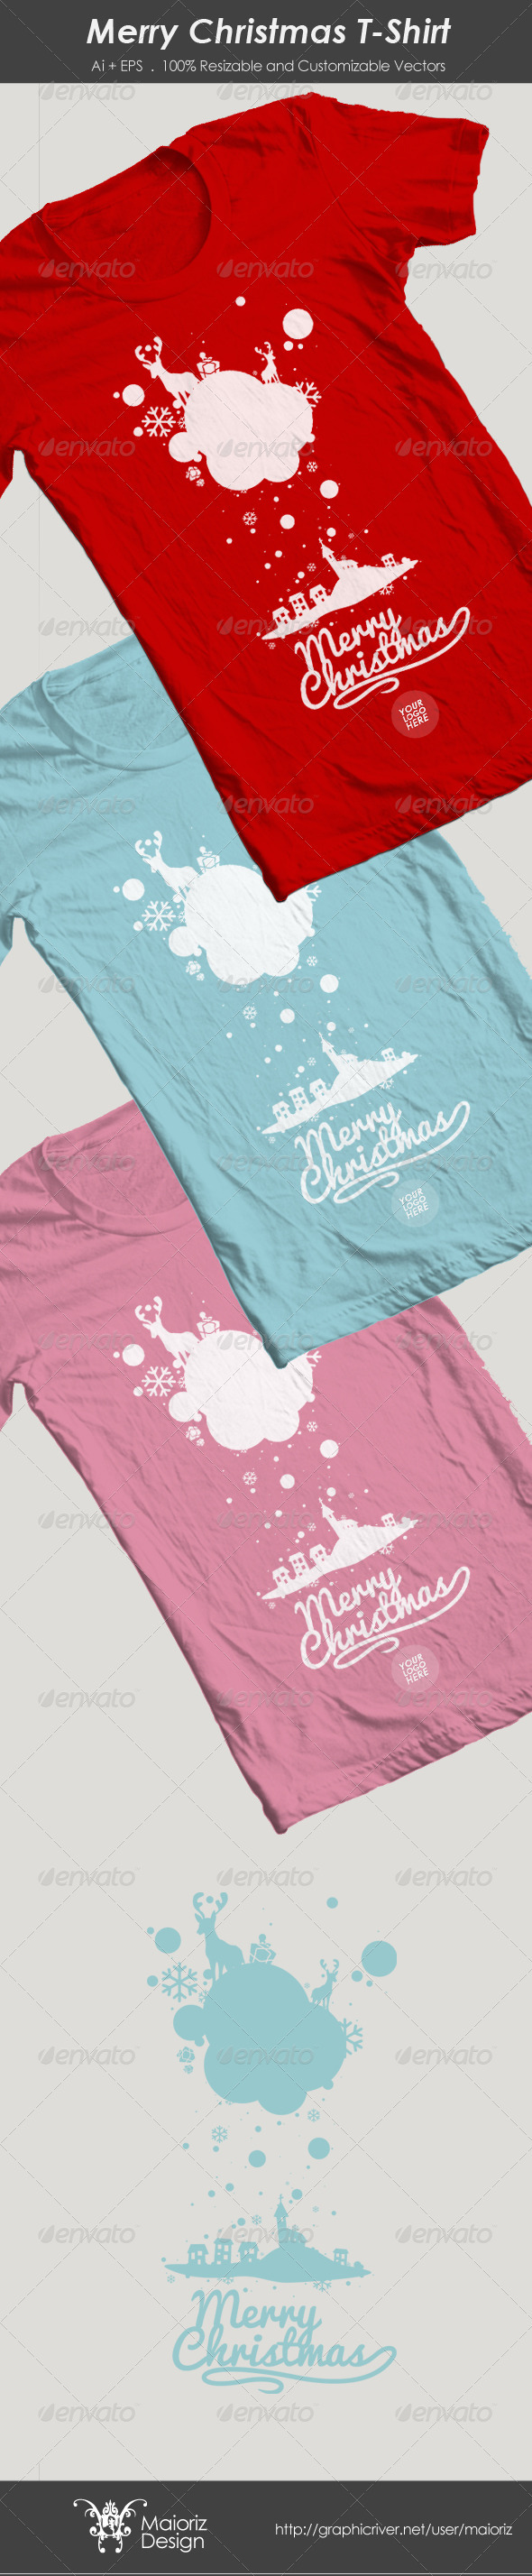 Snow Village Christmas T-Shirt  - Events T-Shirts